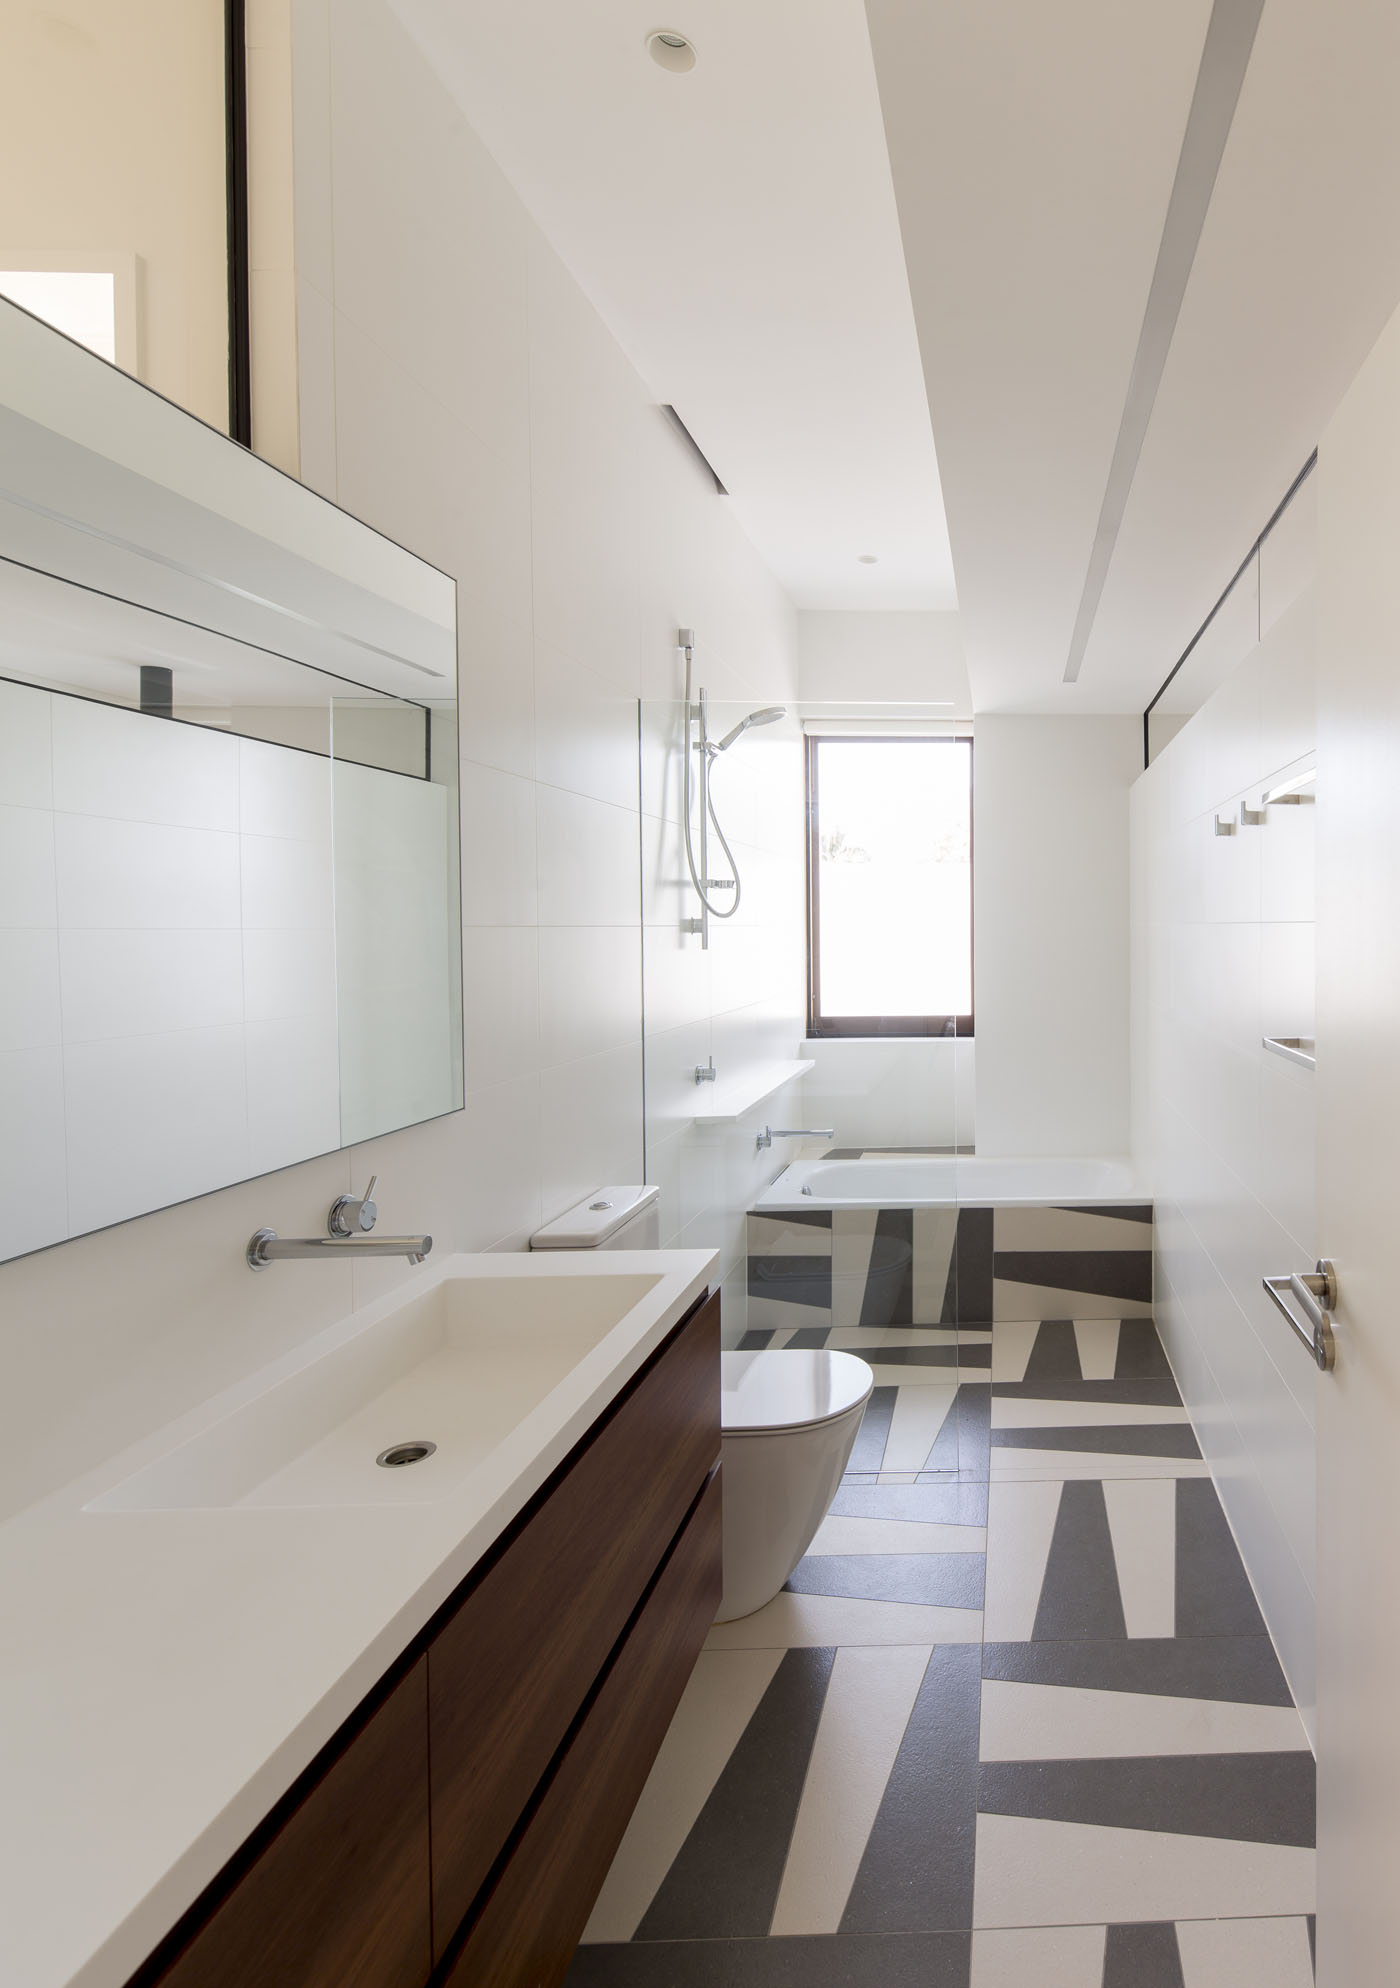 Sheppard Wilson House by Sydney award winning residential architecture office Sam Crawford Architects. Bespoke bathroom featuring black and white geometric floor tiles